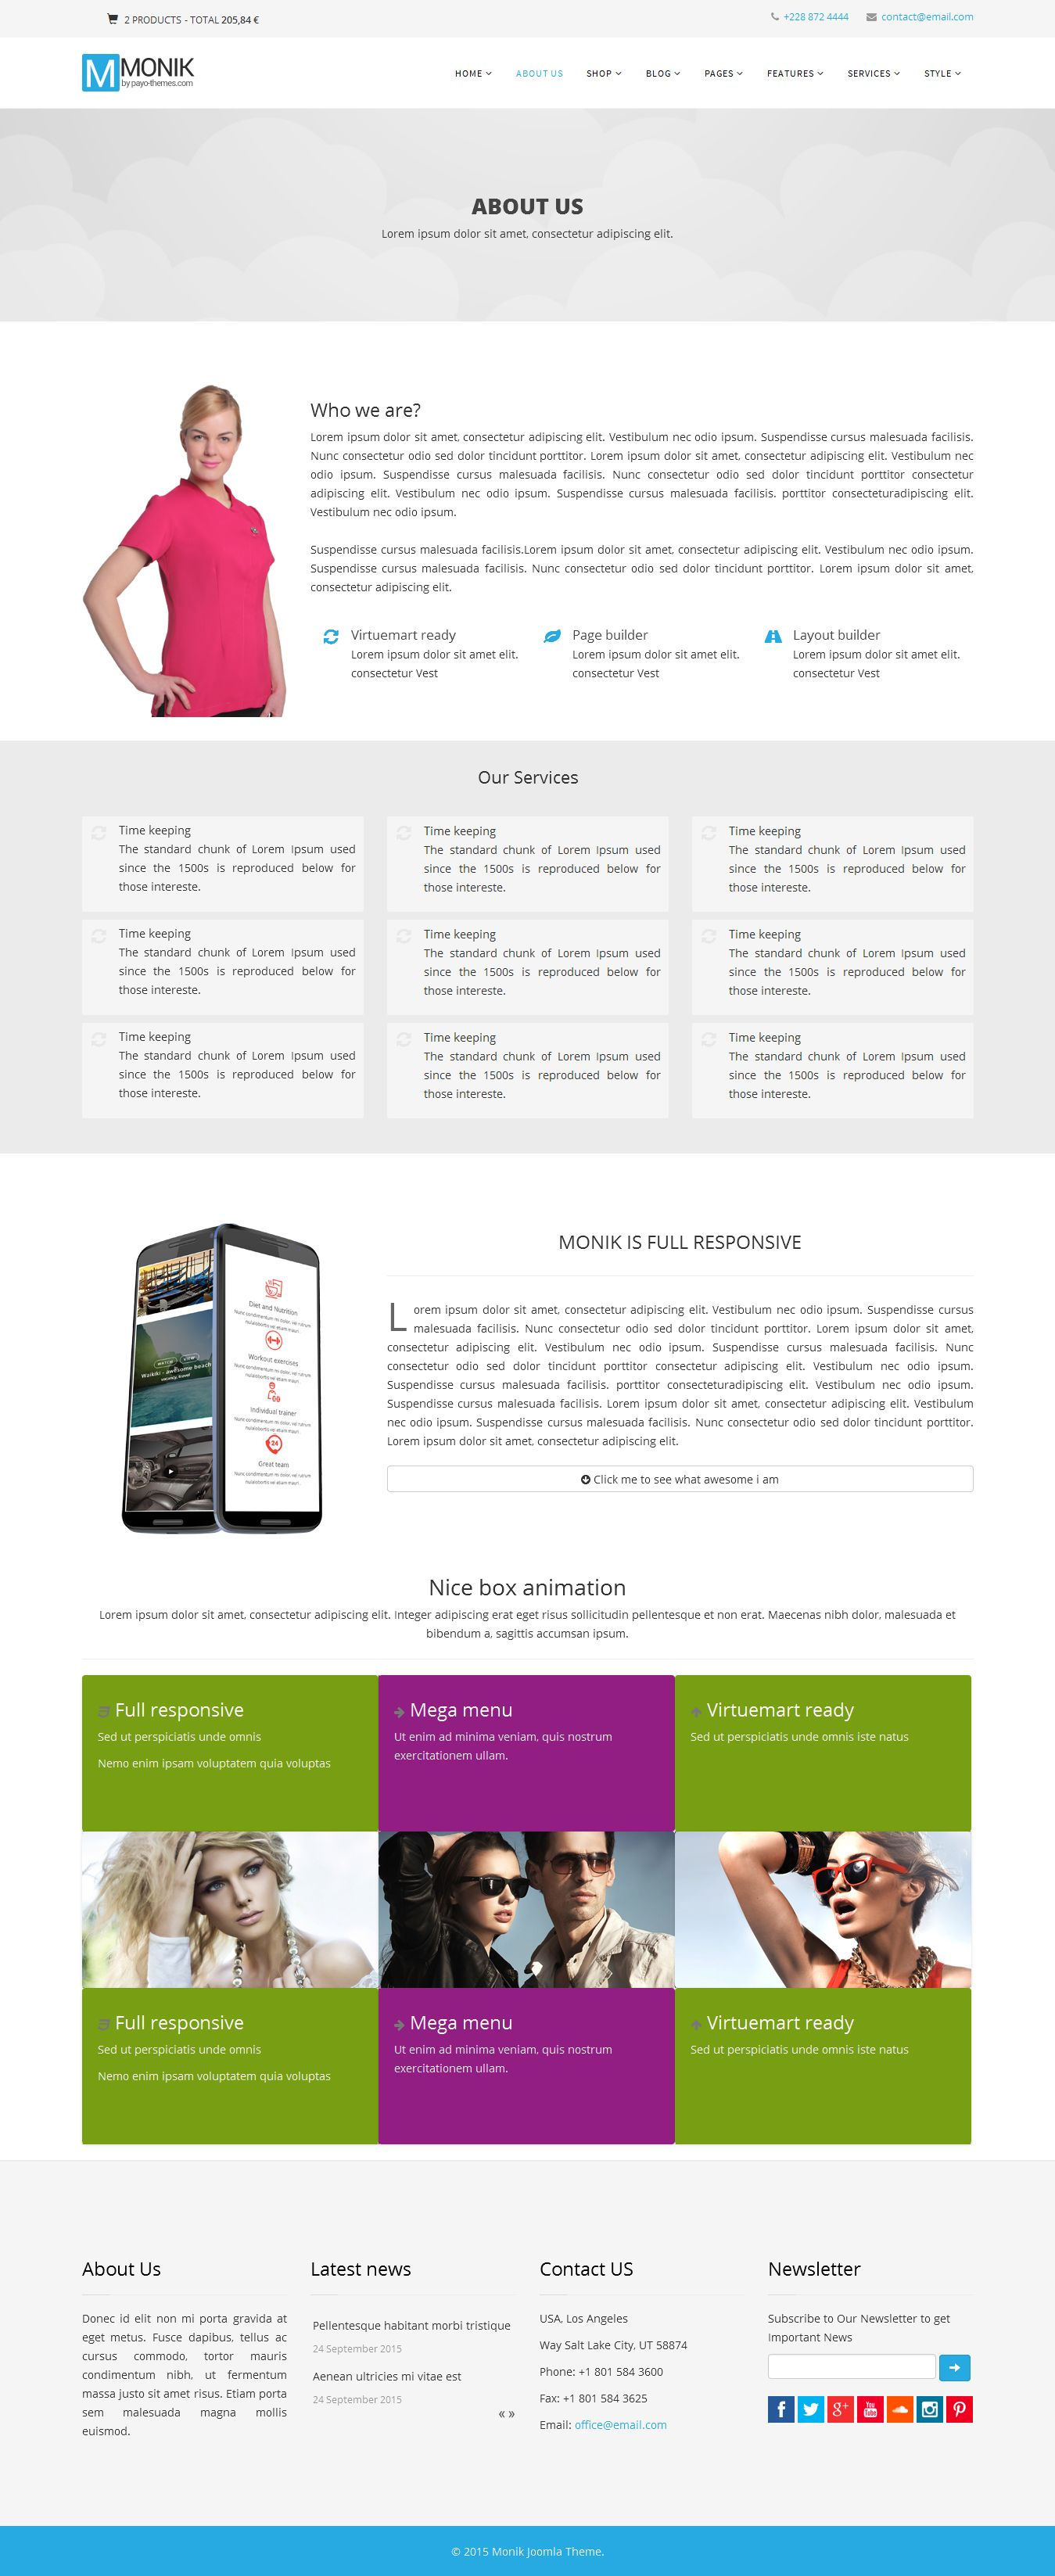 Monik - Responsive Multi-purpose Joomla Template Screenshot 1